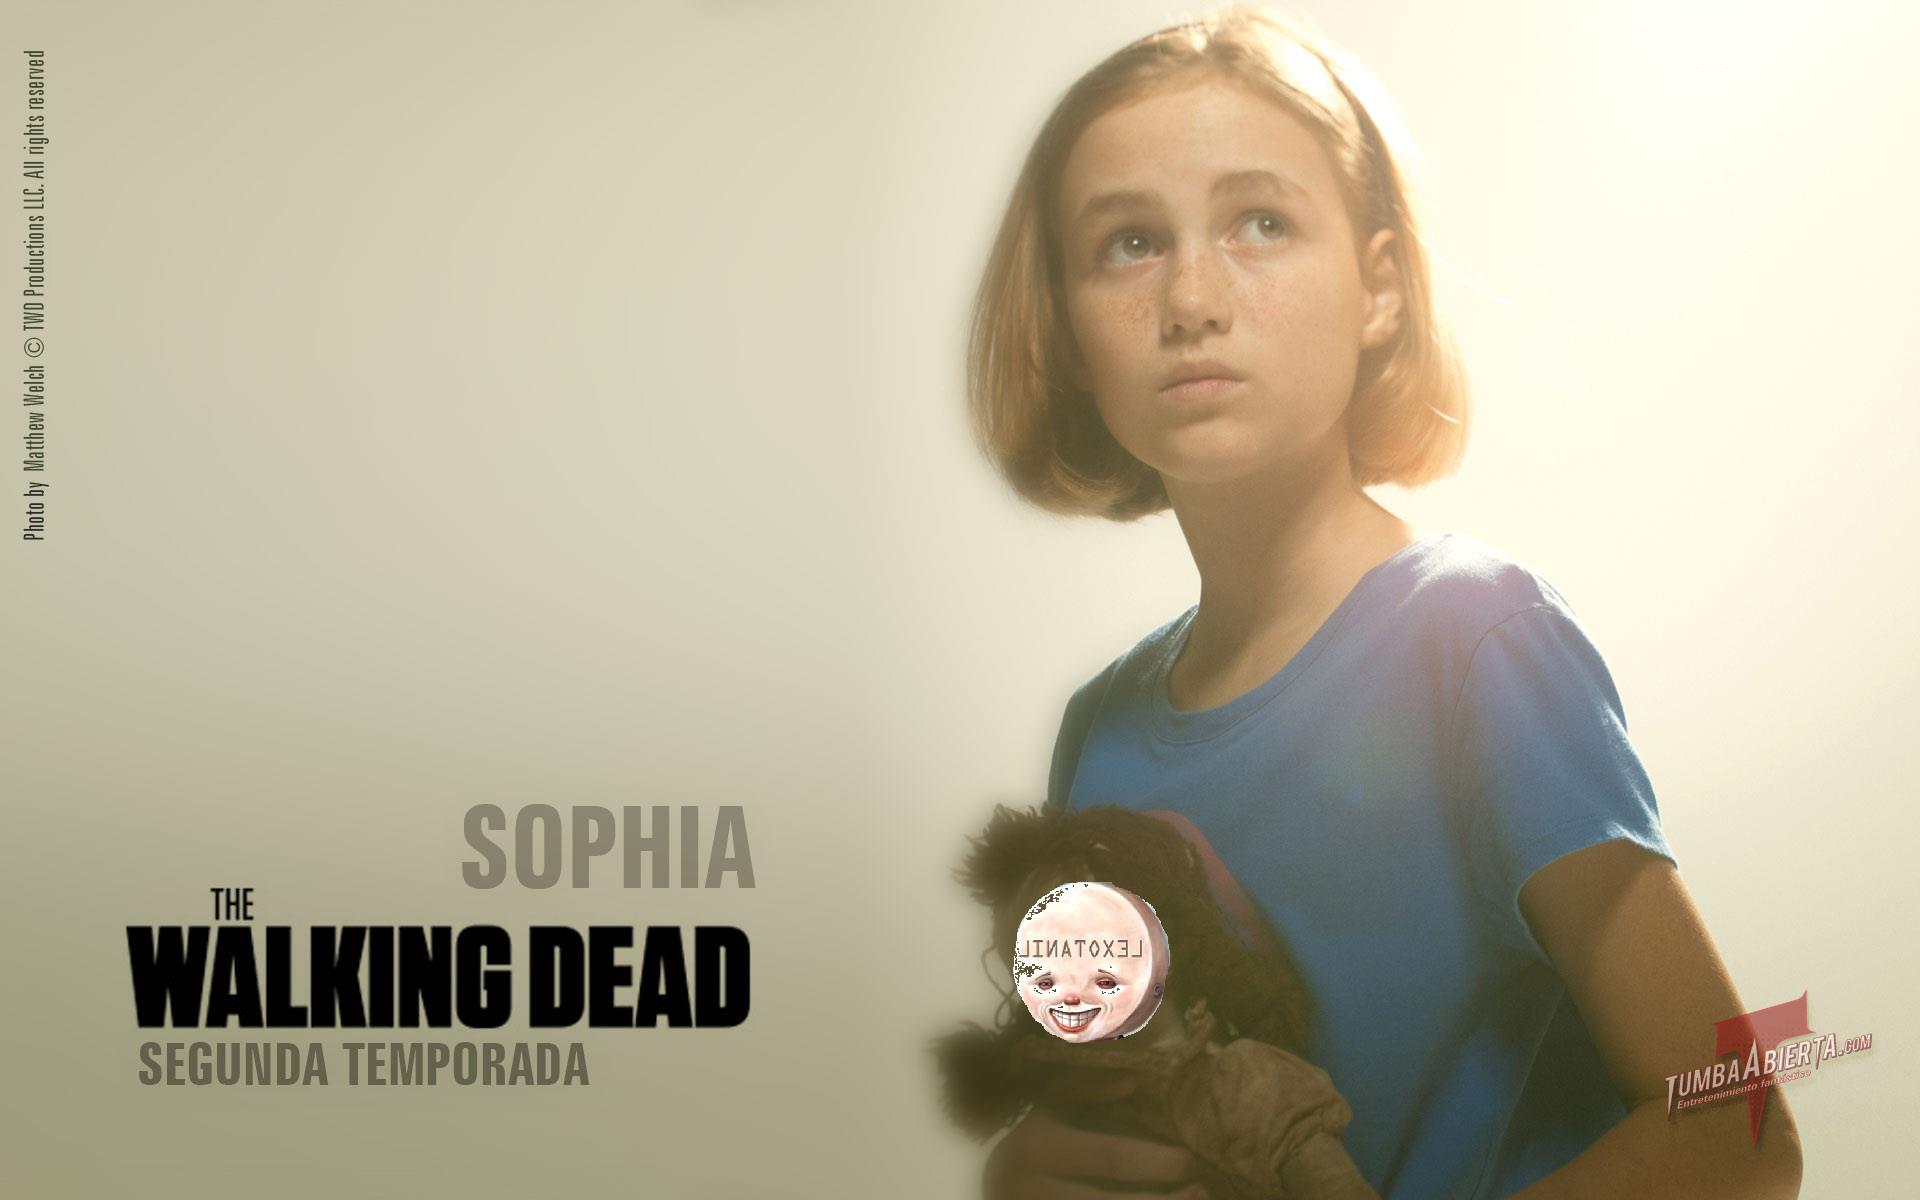 The Walking Dead Temporada 2 episodio 7 HD, Sub!